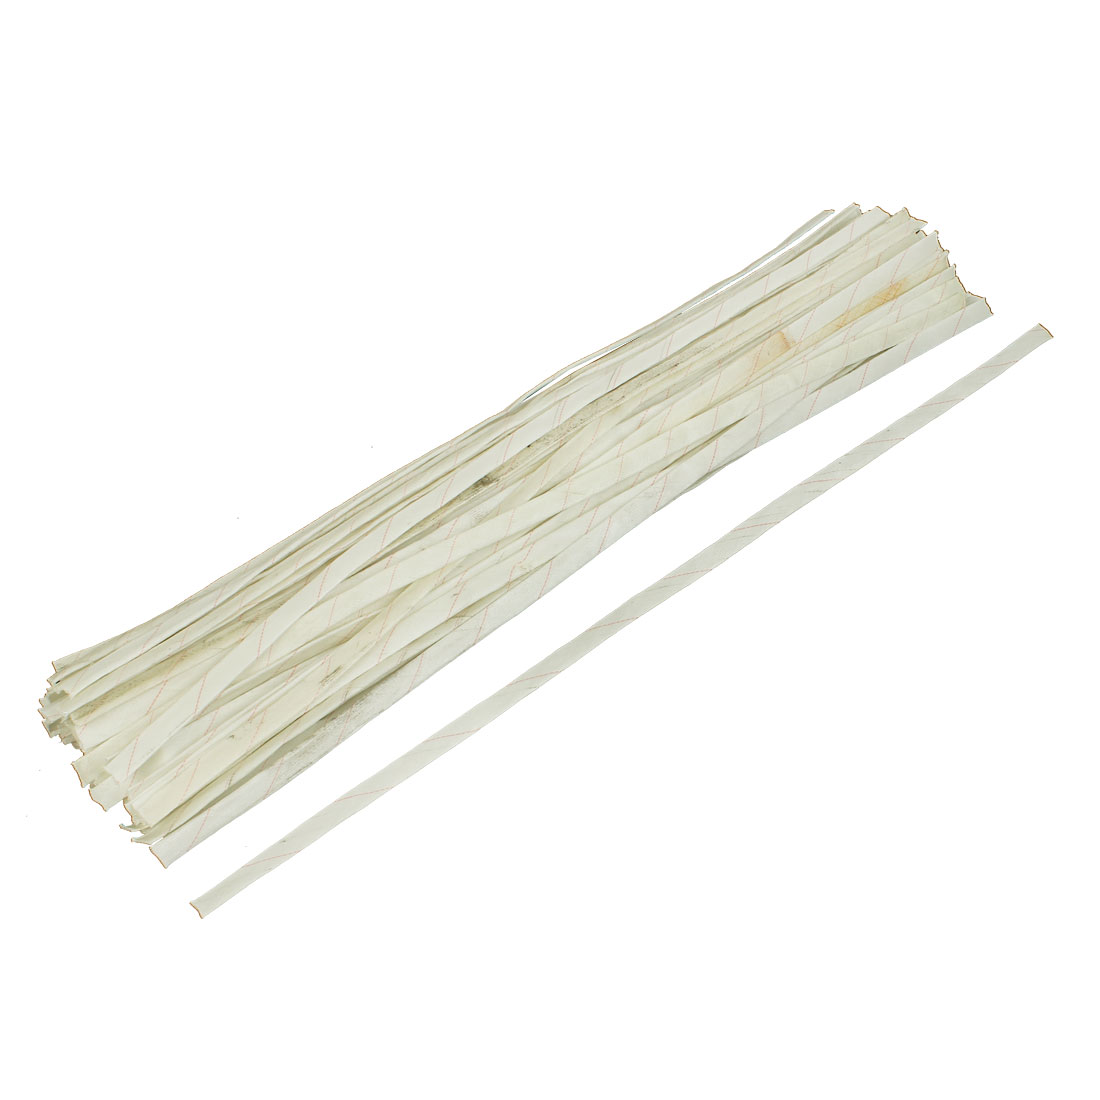 70 Pcs 80cm Long 12mm Dia Electrical Wire Fiberglass Insulation Sleeve